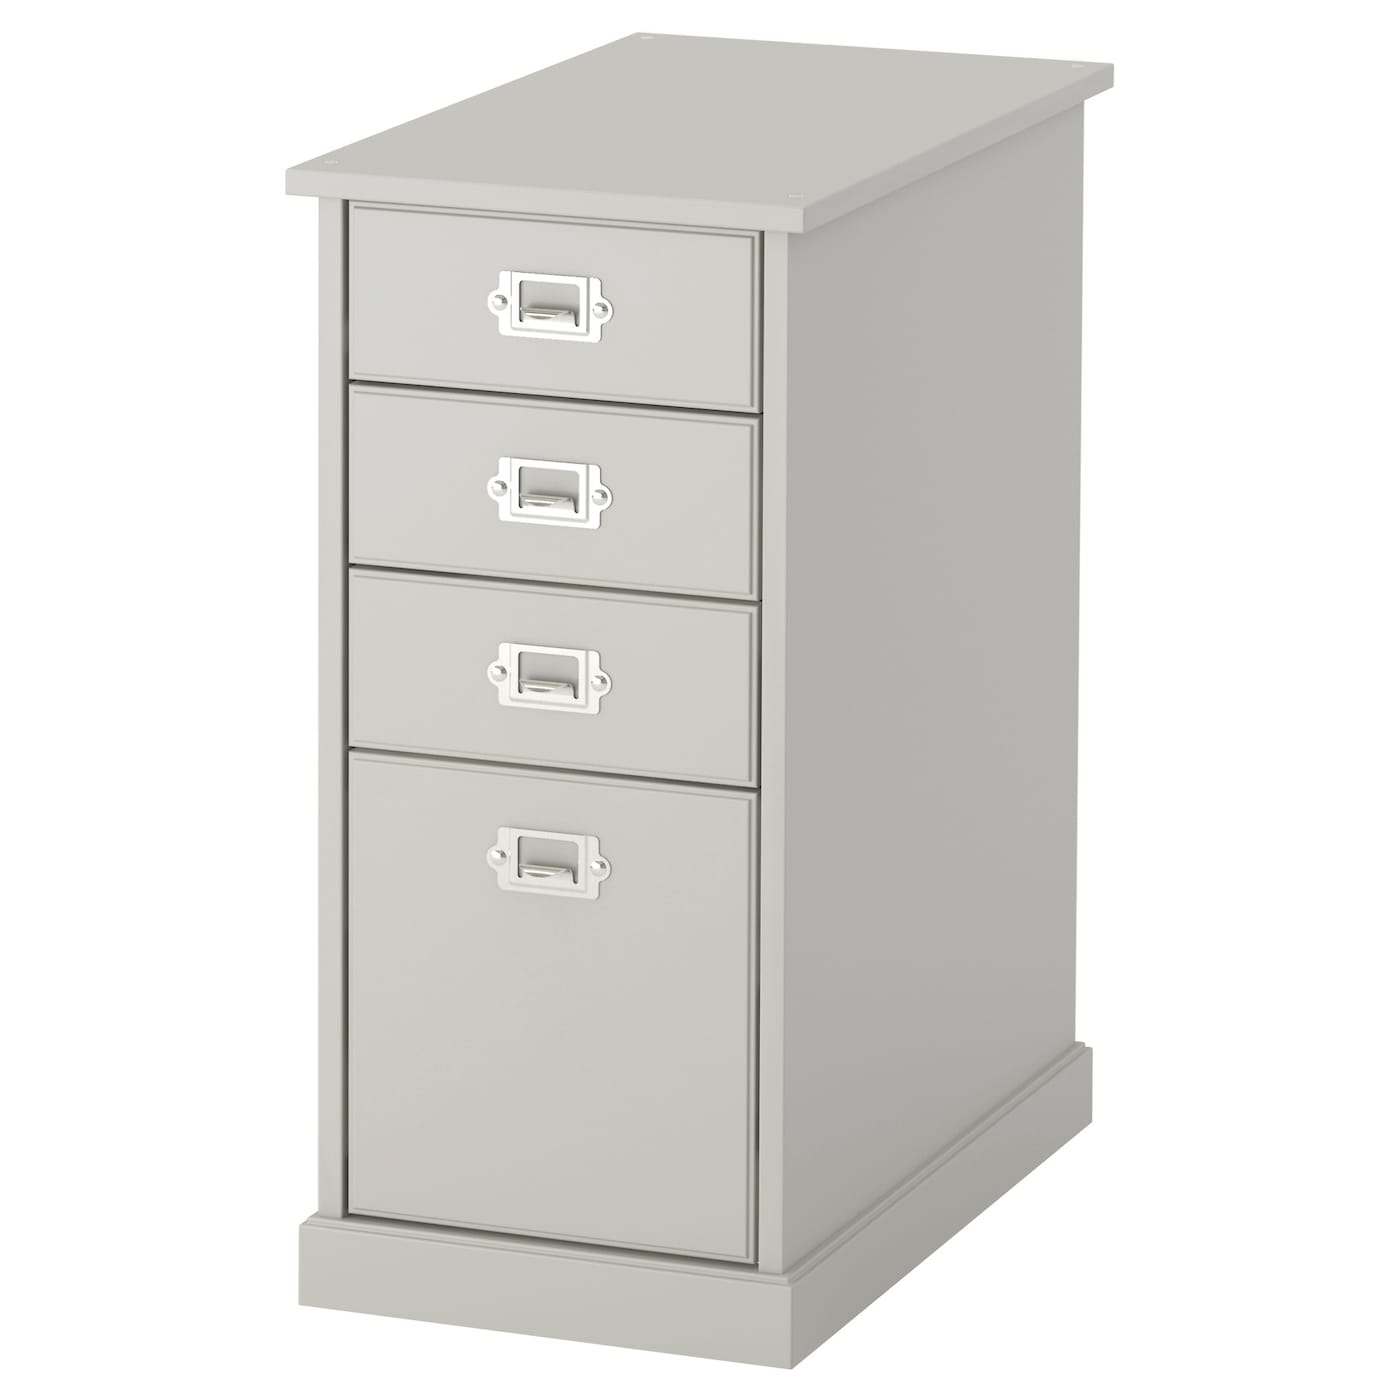 IKEA KLIMPEN drawer unit Can be placed in the middle of a room because the back is finished.